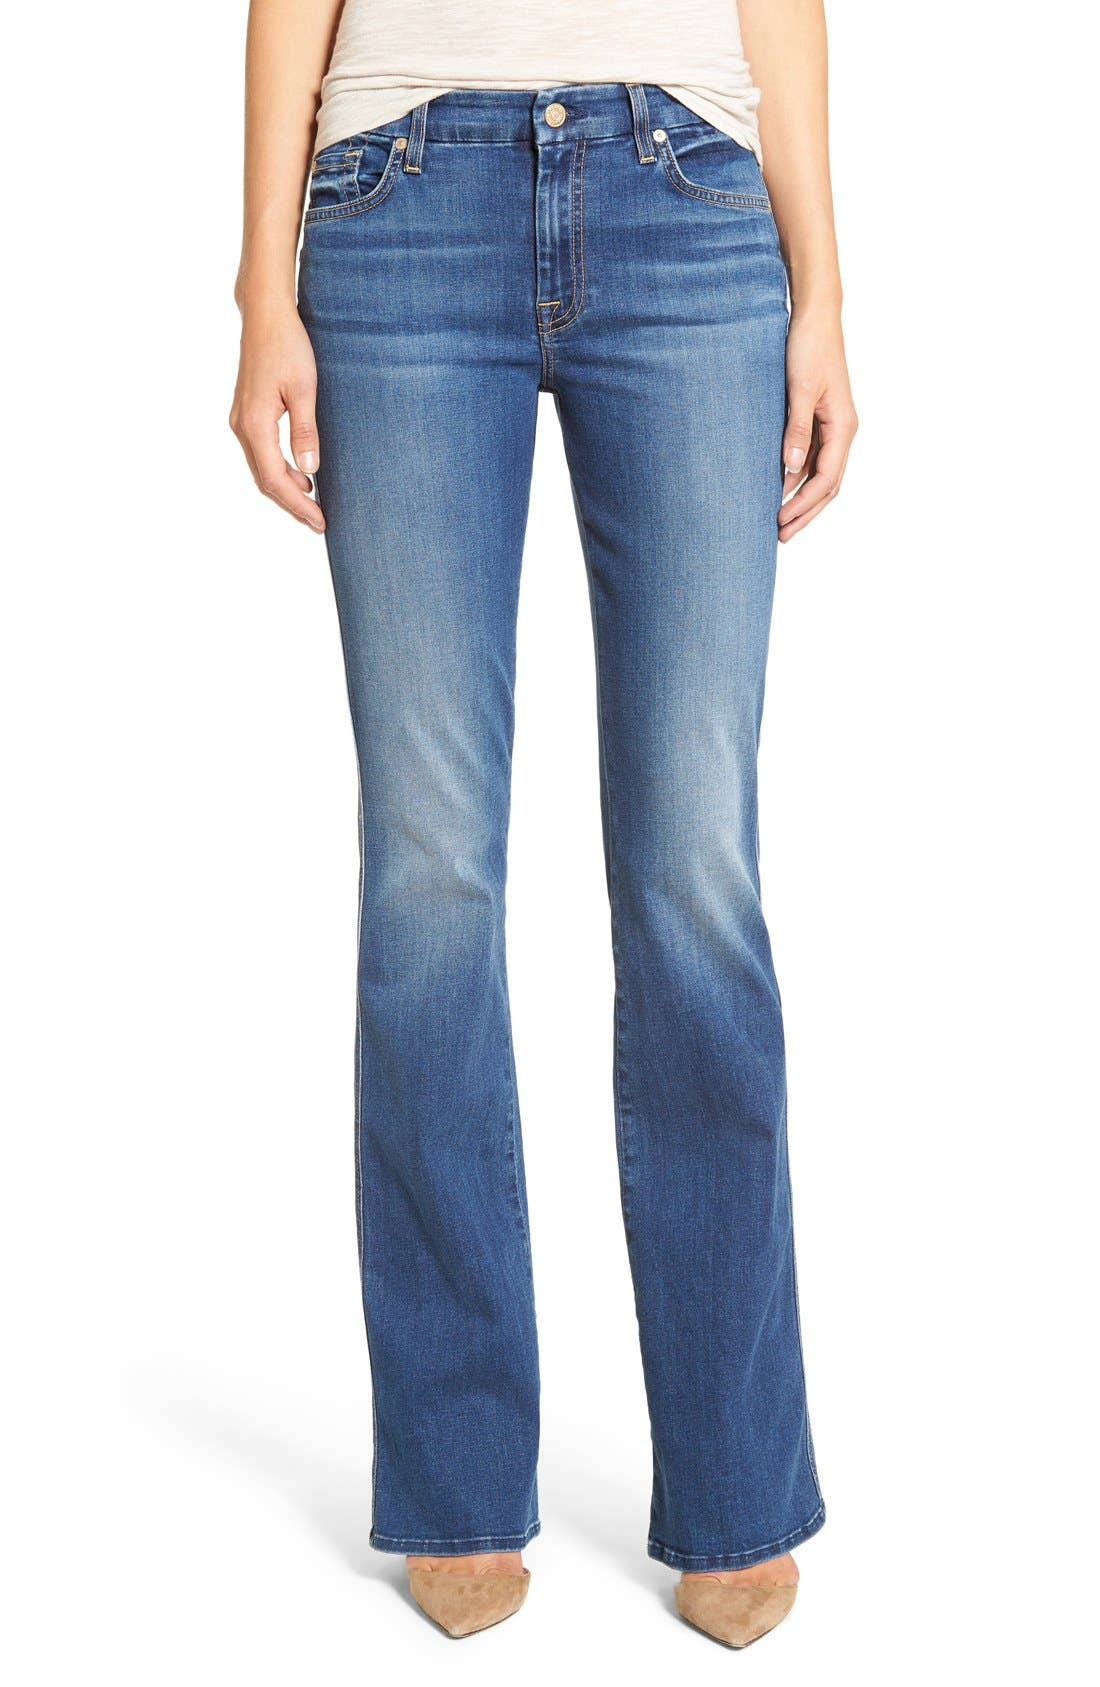 Main Image - 7 For All Mankind® 'b(air) - A Pocket' Flare Jeans (Reign)